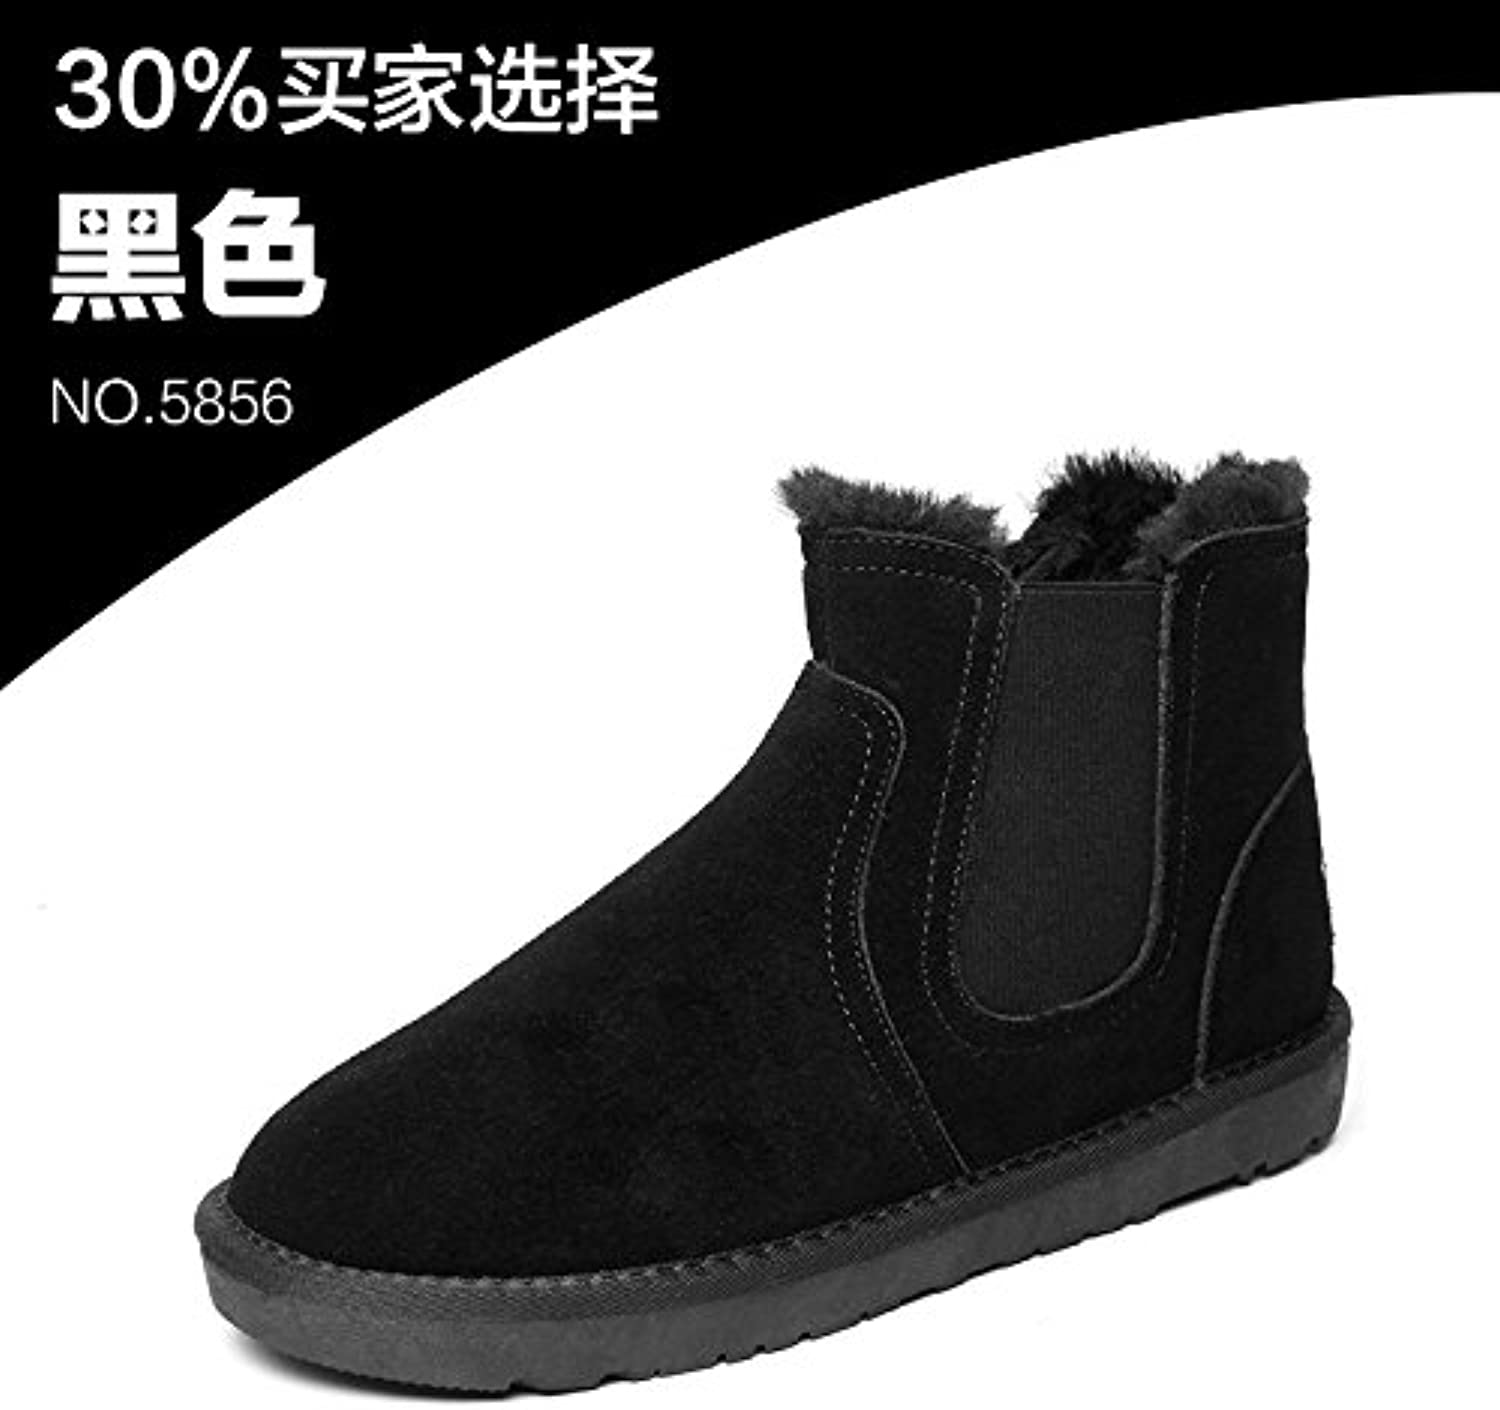 Shukun Men's boots Snow Boots Men'S Winter Men'S shoes Warm Cotton shoes Cotton Waterproof Couple Bread shoes Pu Men'S Boots Martin Boots